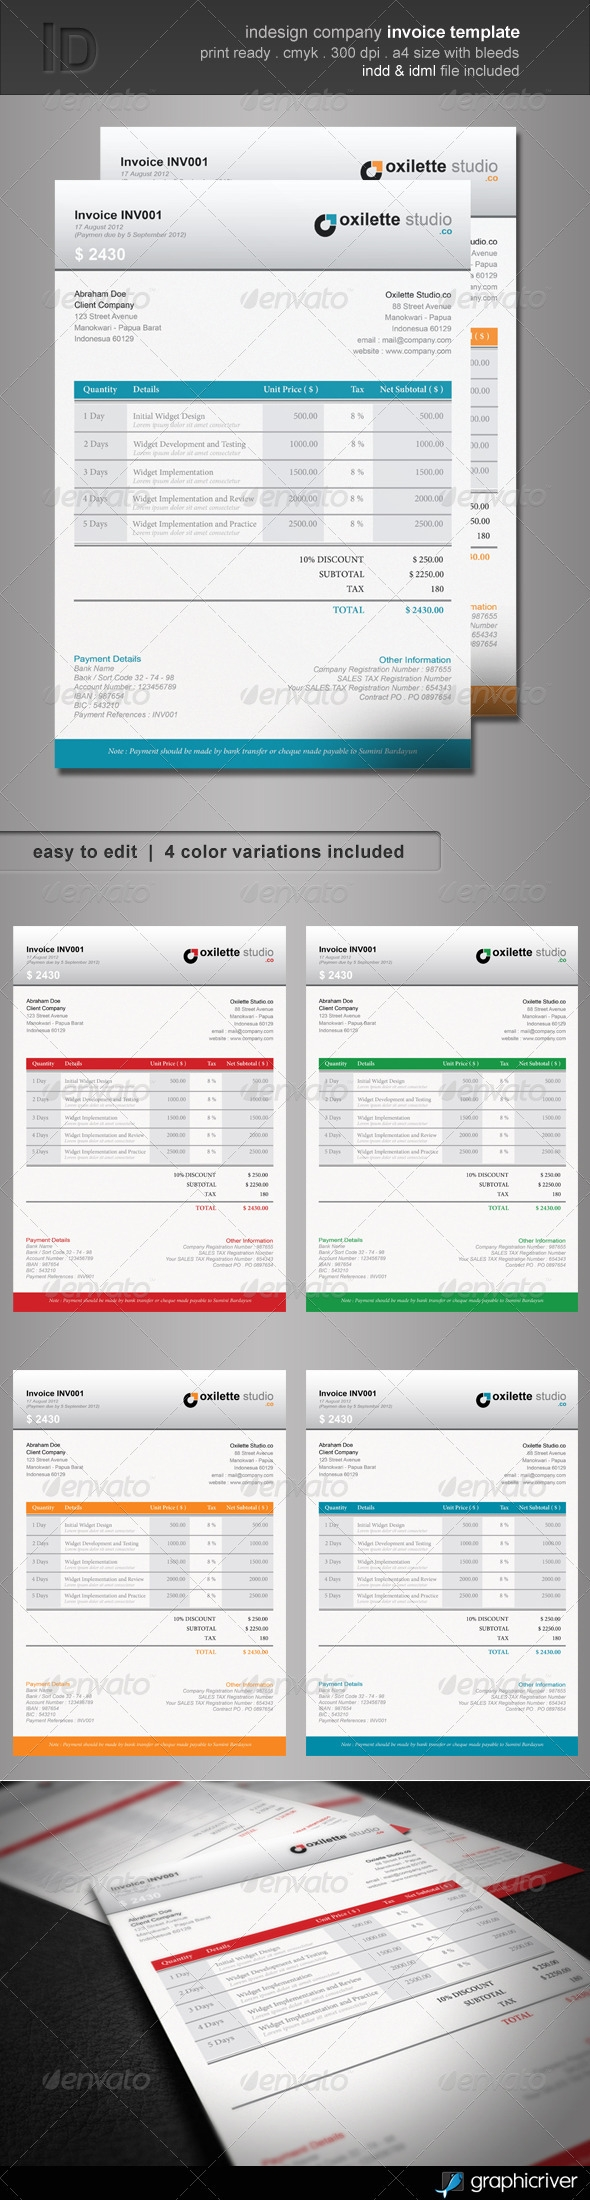 indesign company invoice template graphicriver invoice template indesign